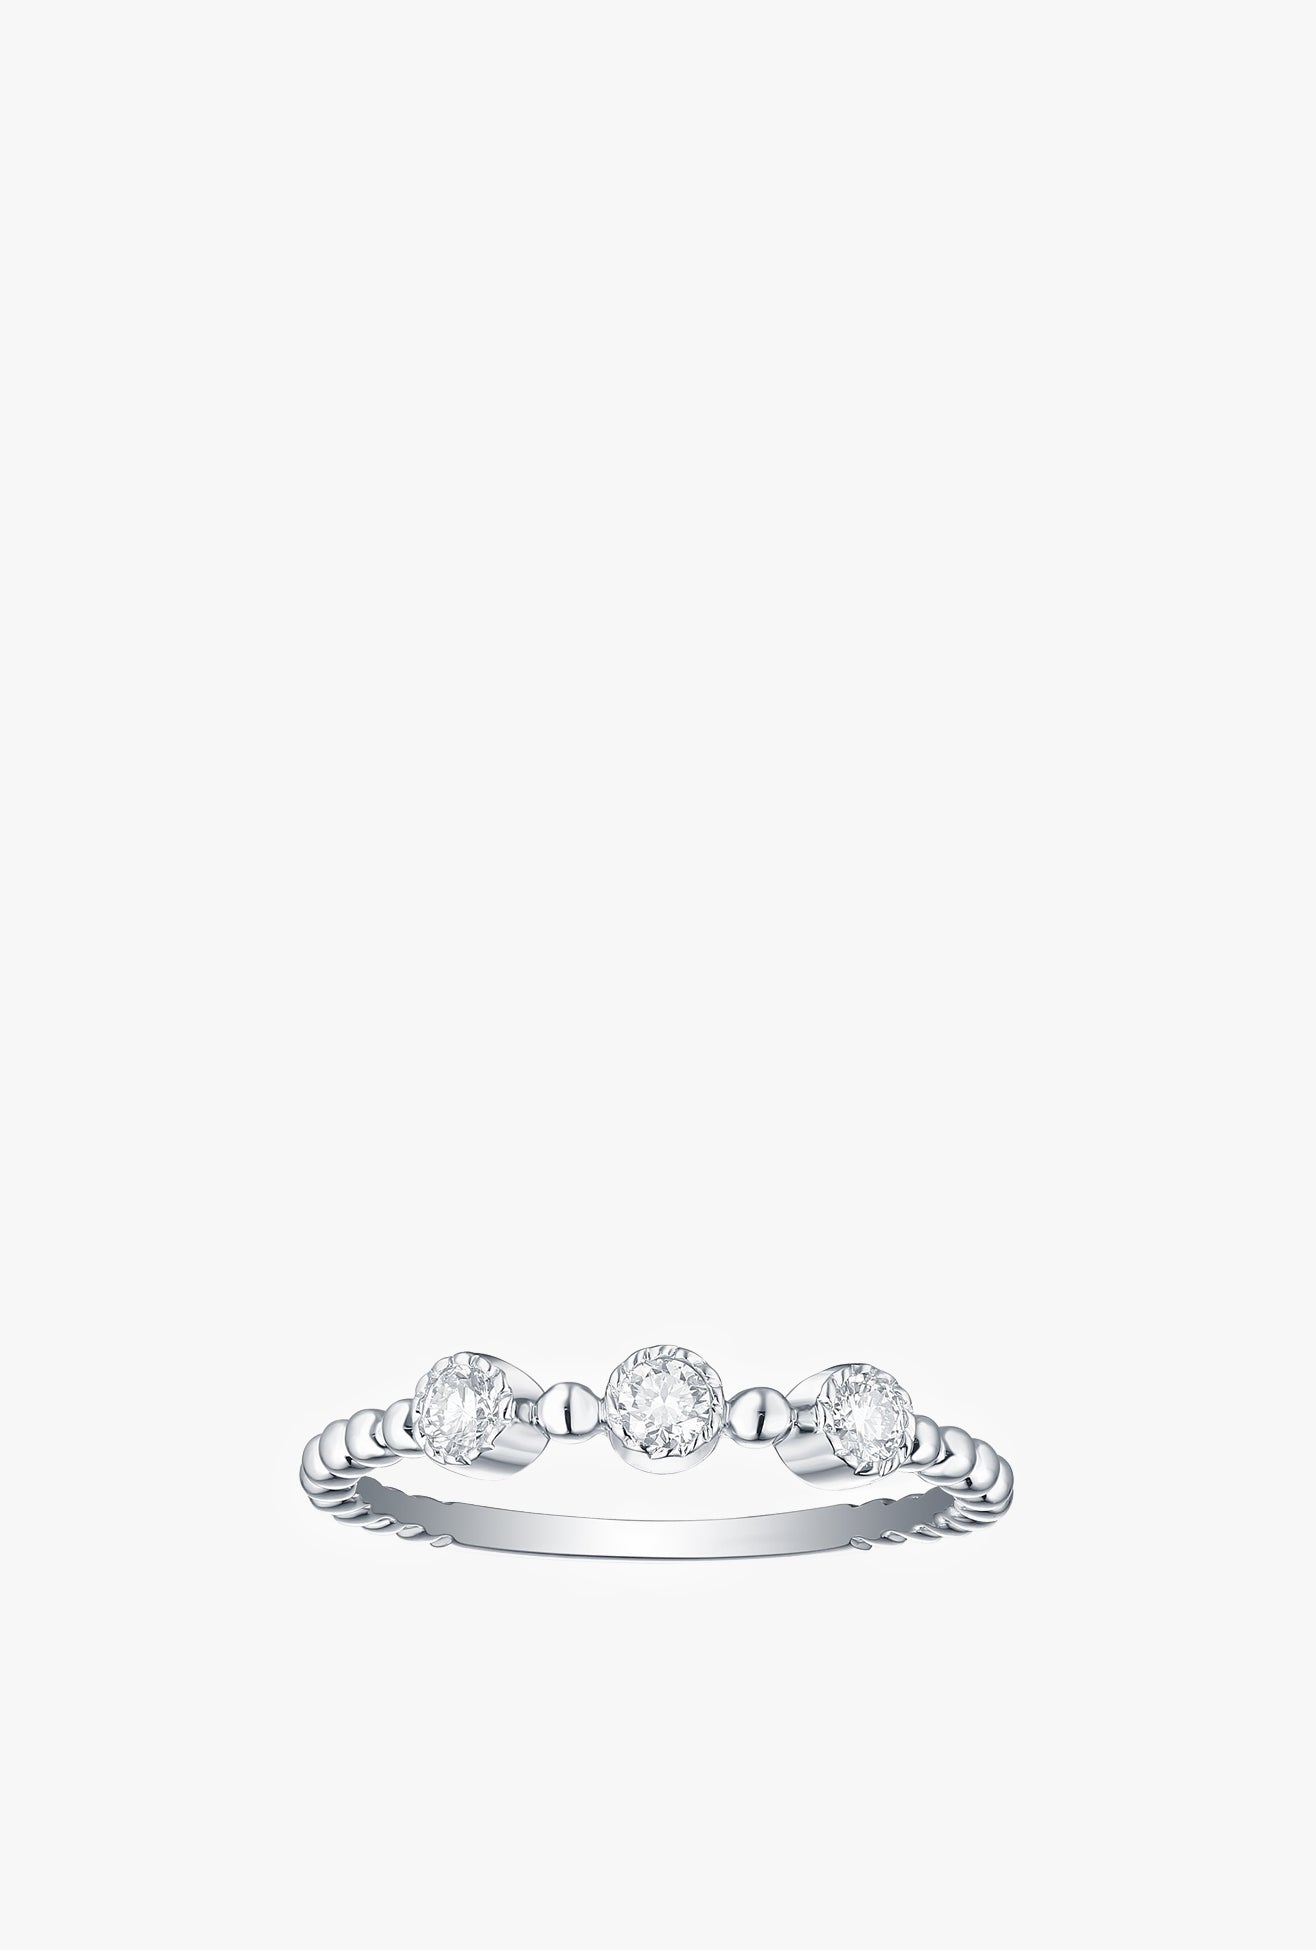 3 Large Bubbly Lab Grown Diamonds Ring